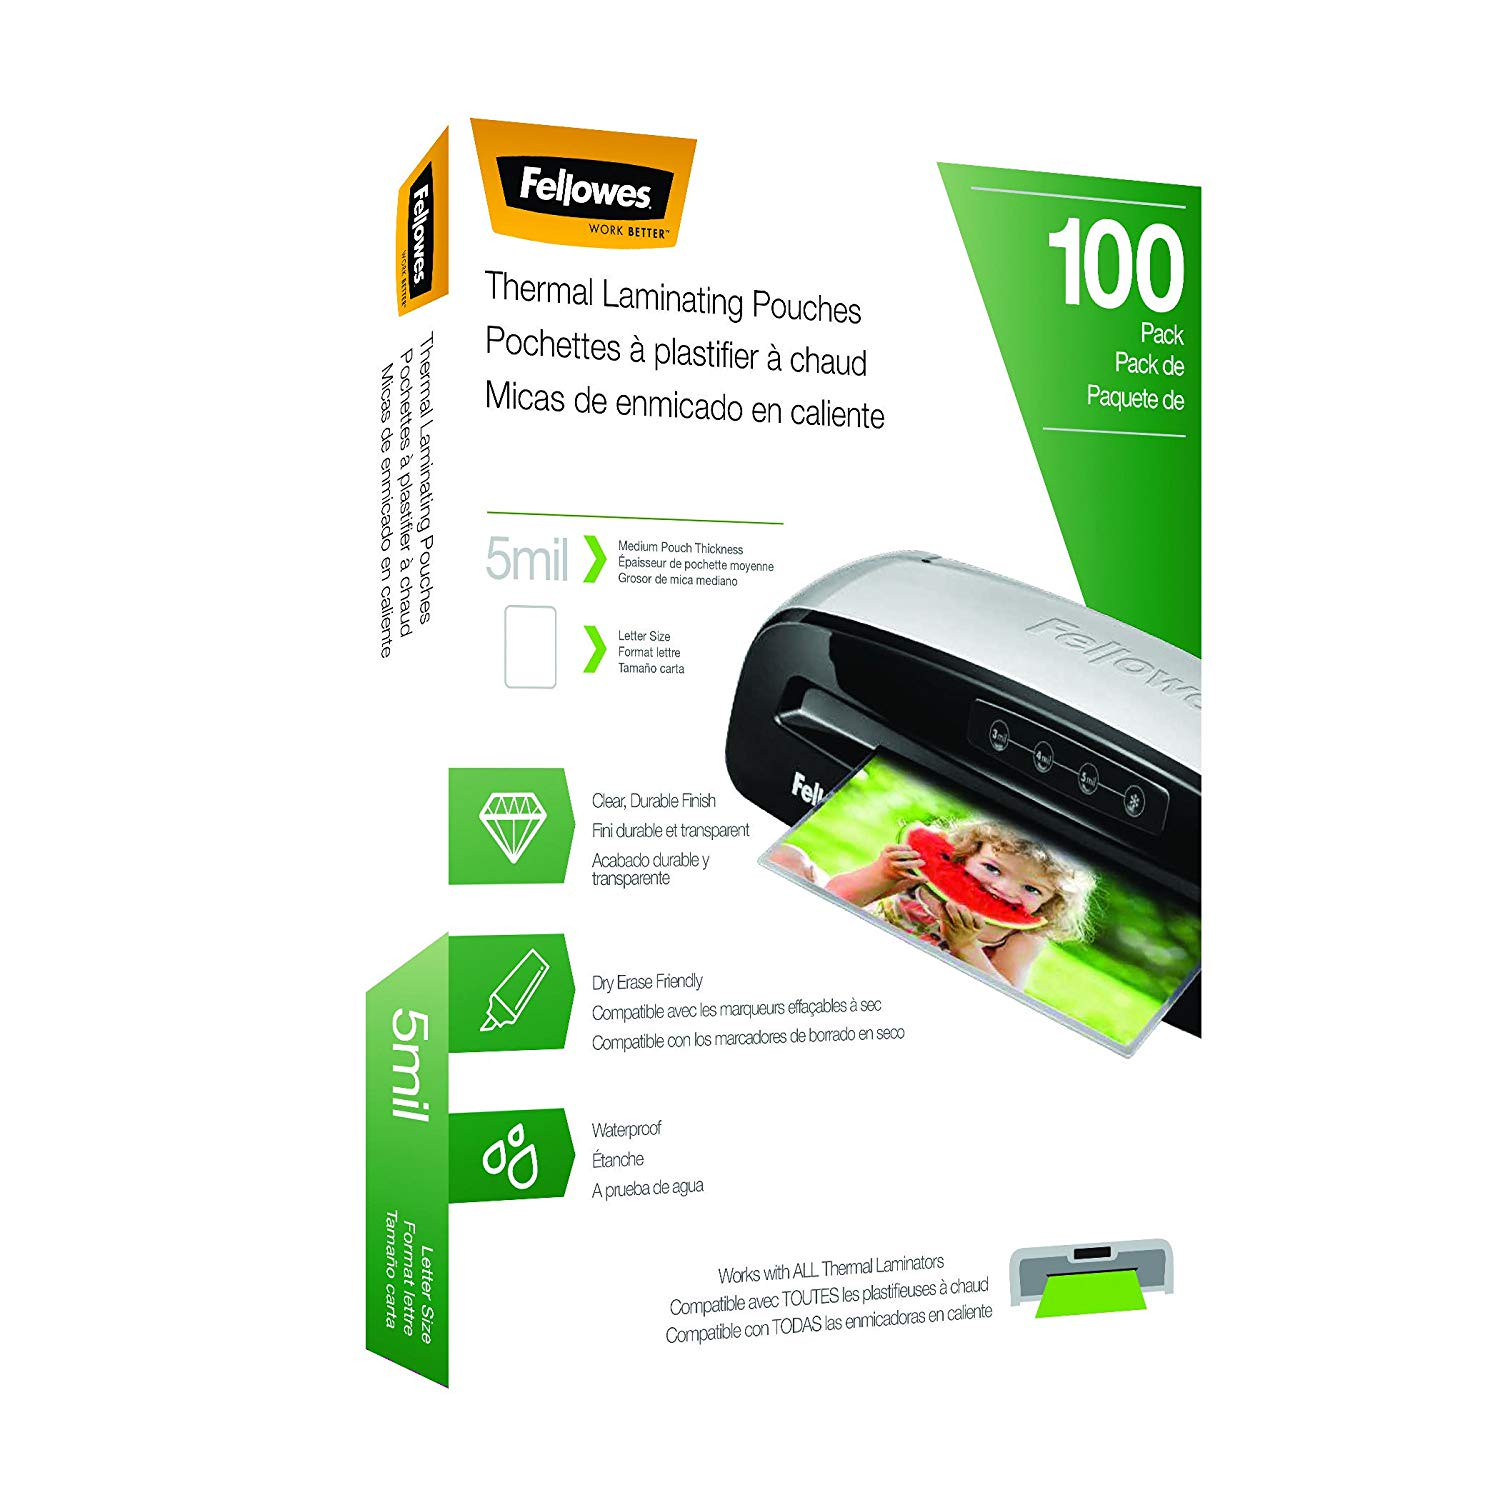 Fellowes Thermal Laminating Pouches, 100 Pk.